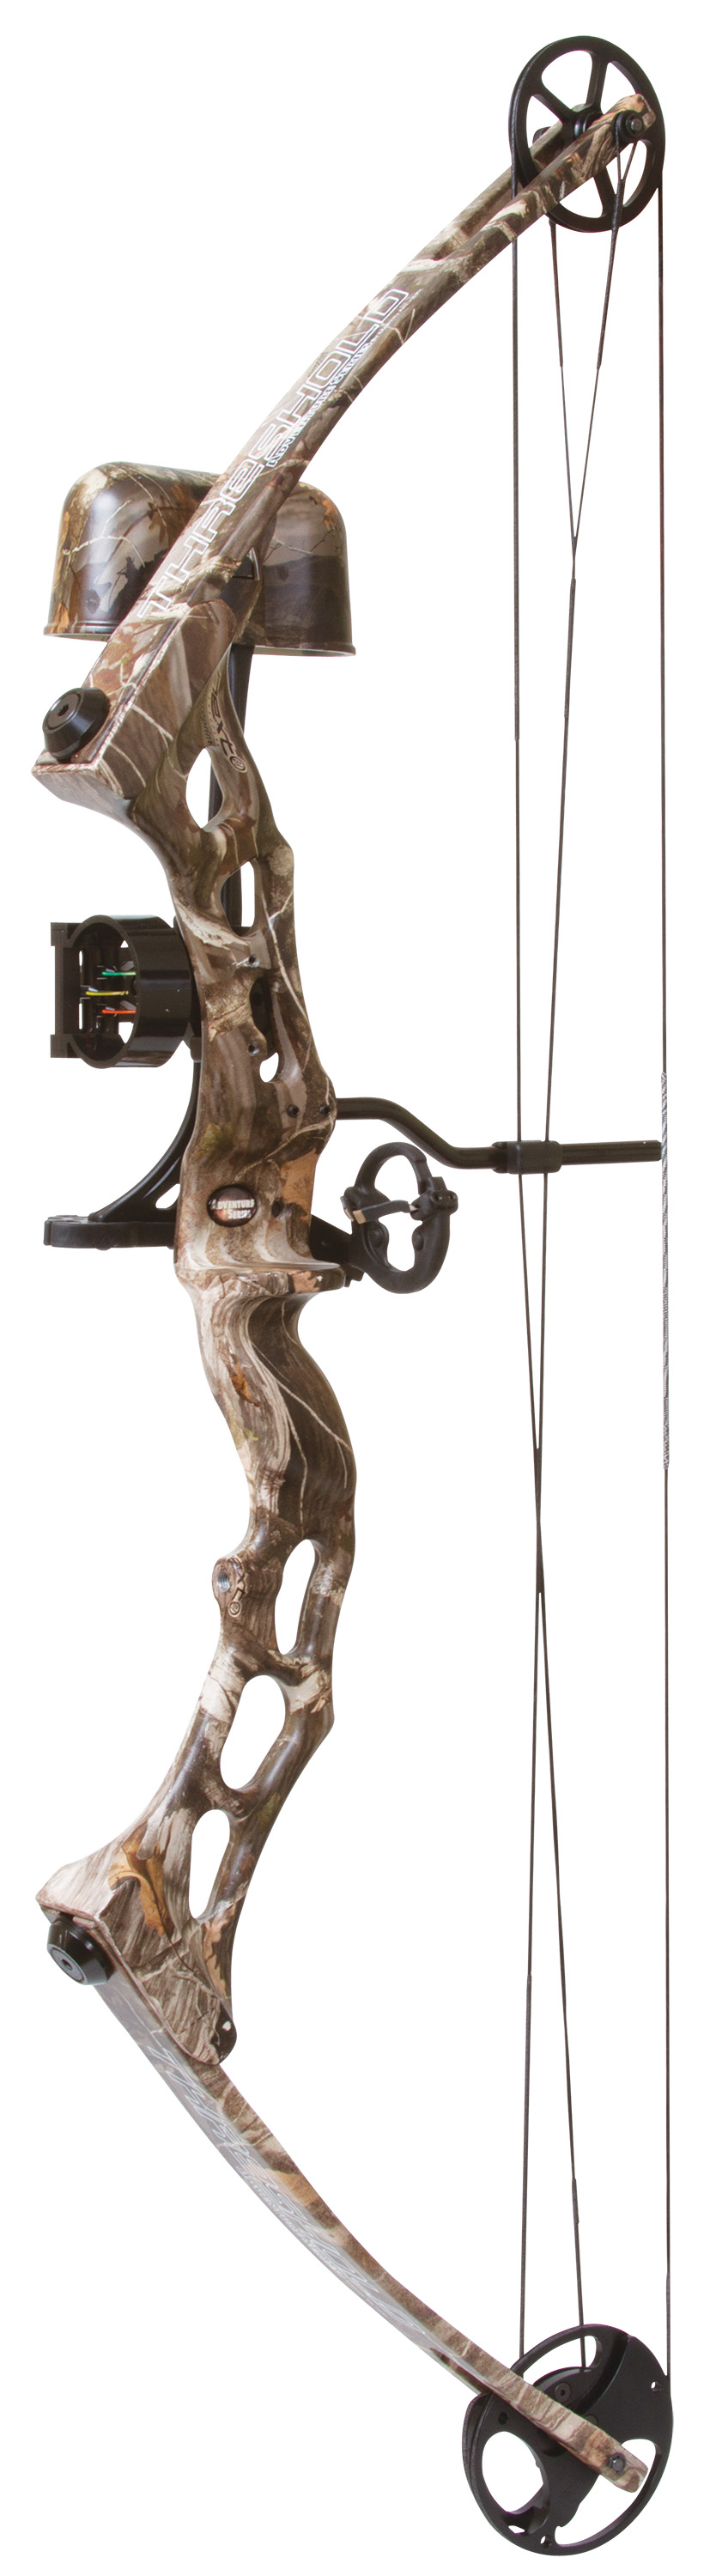 Martin Threshold Bow w/Package RH Only - Next G1 Camo